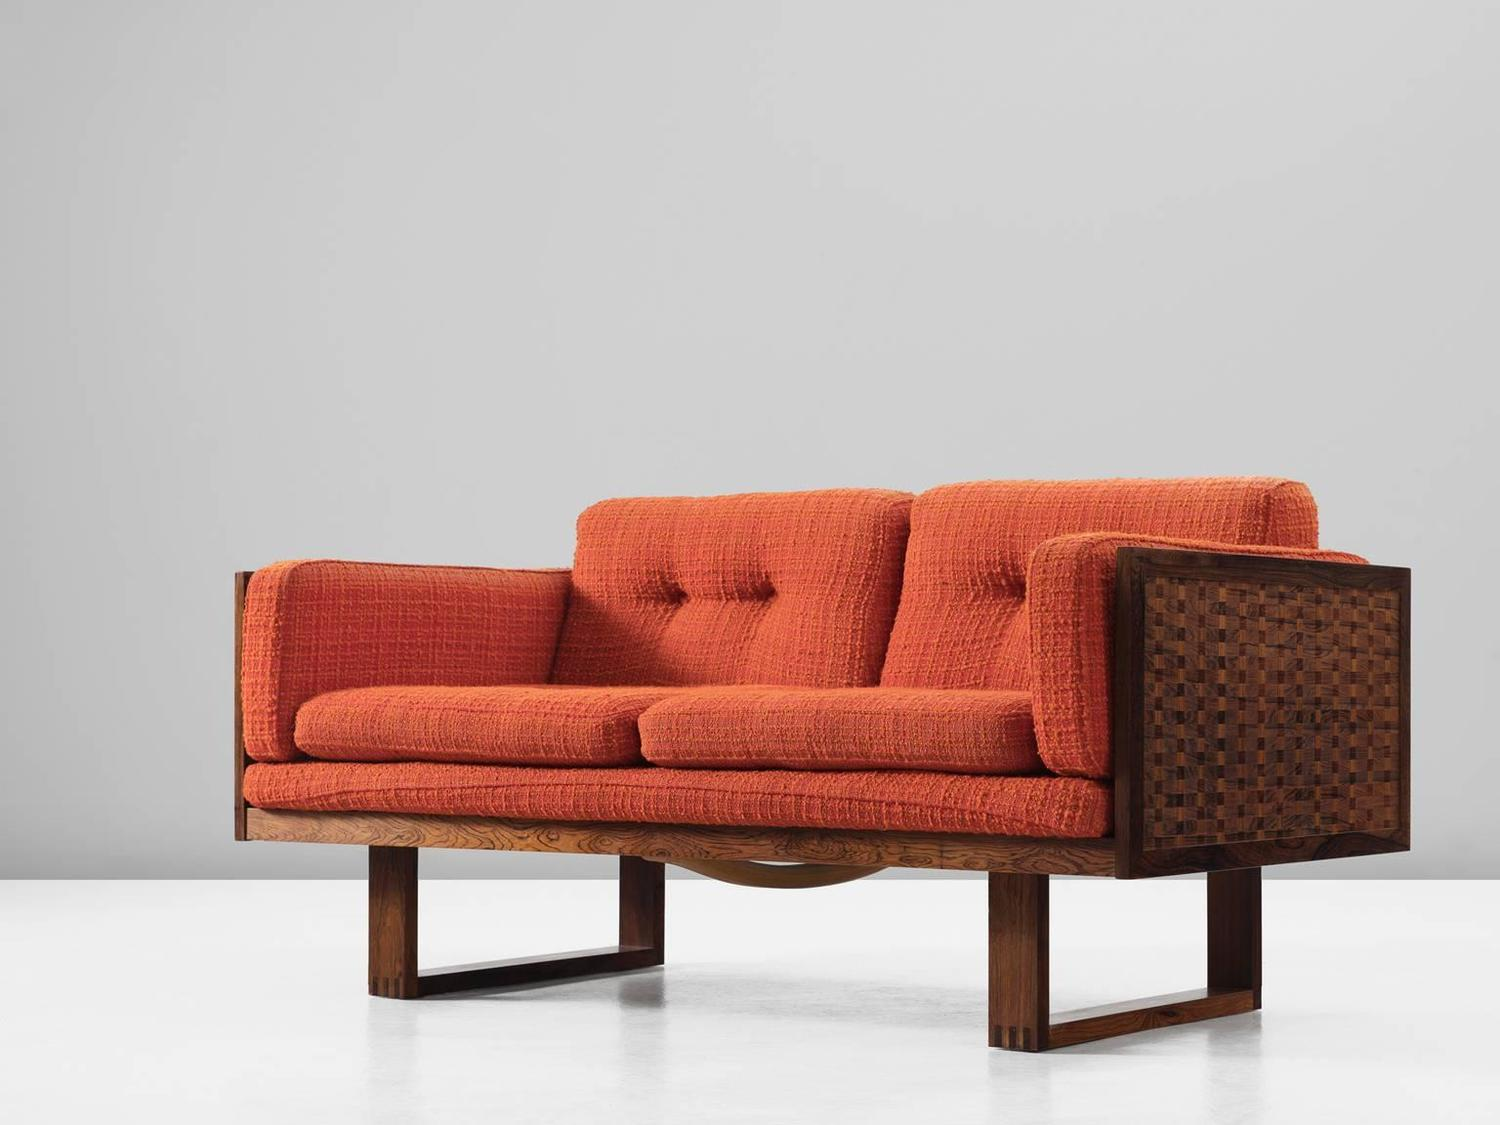 Poul Cadovius Small Rosewood Sofa In Orange Fabric